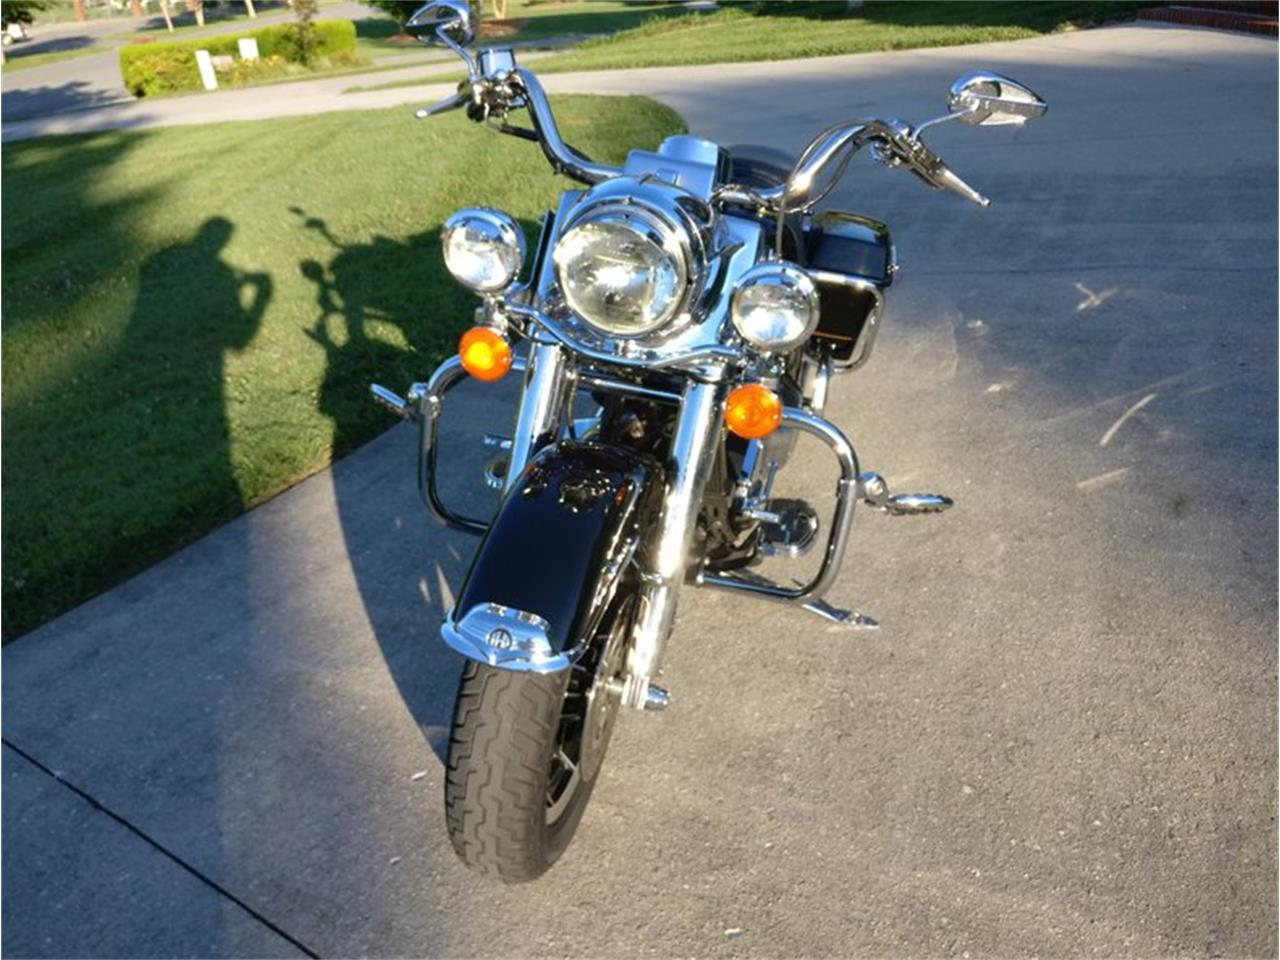 1998 Harley-Davidson Road King for sale in Cookeville, TN – photo 2